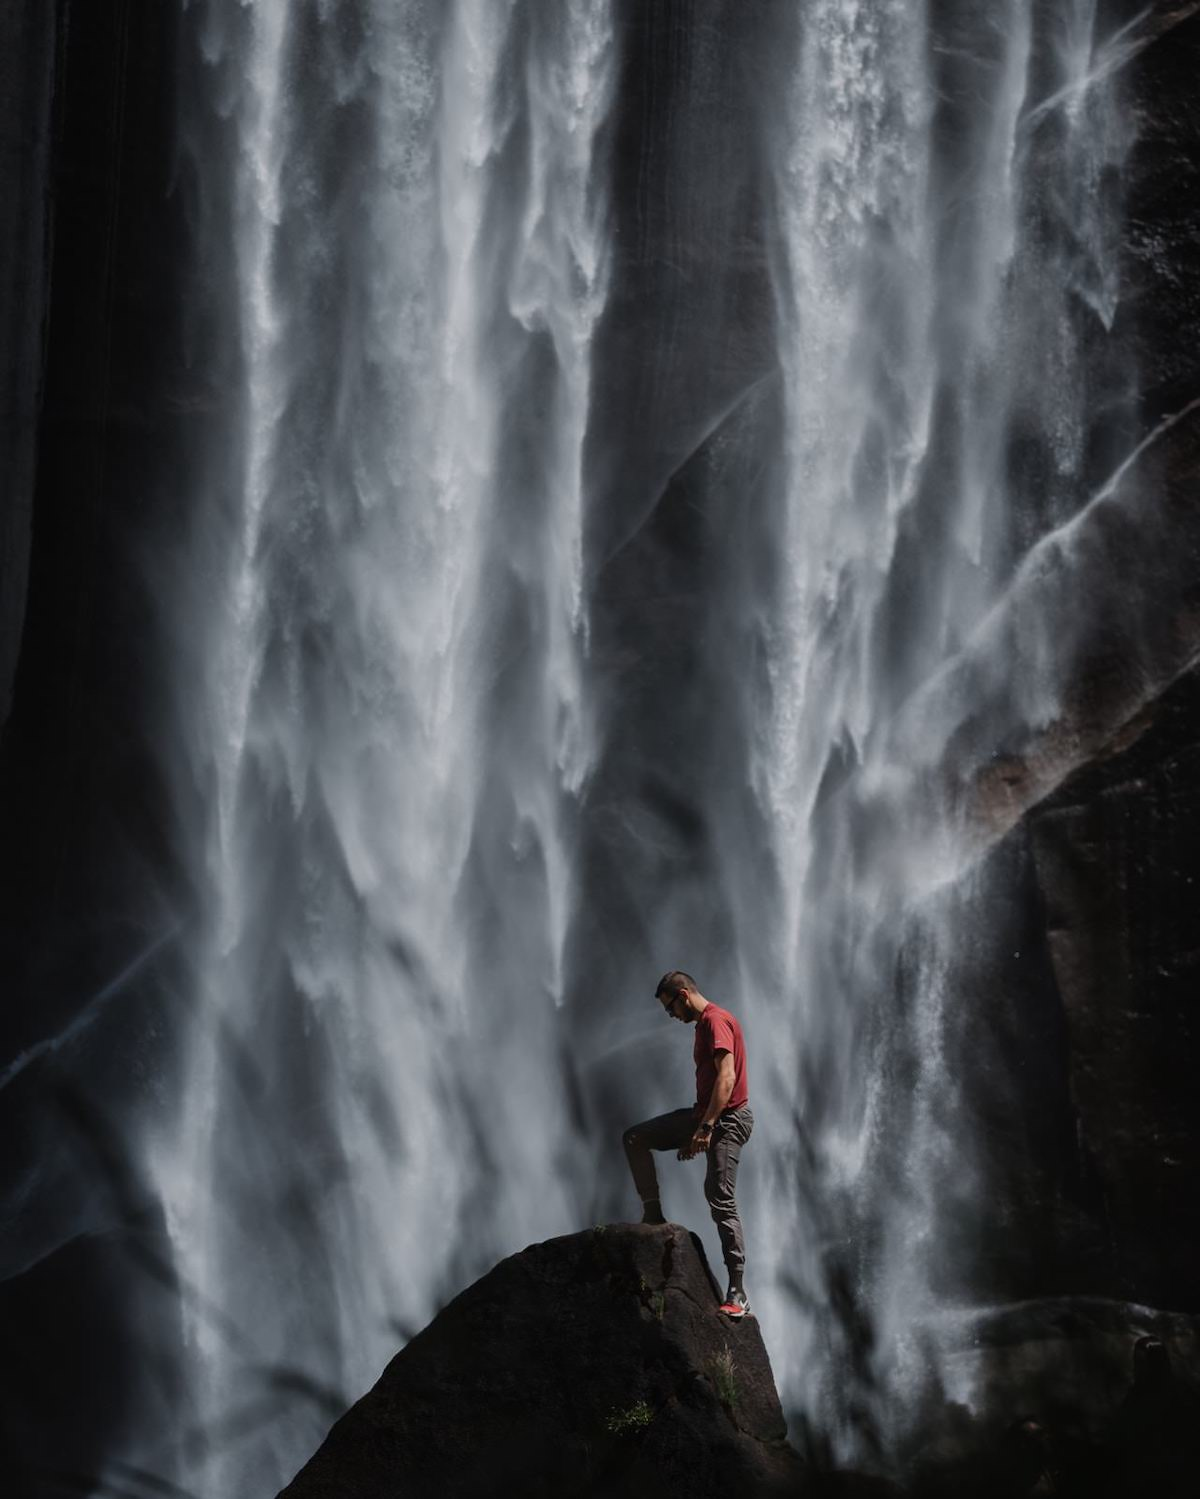 Best photography locations in yosemite national park for photographers